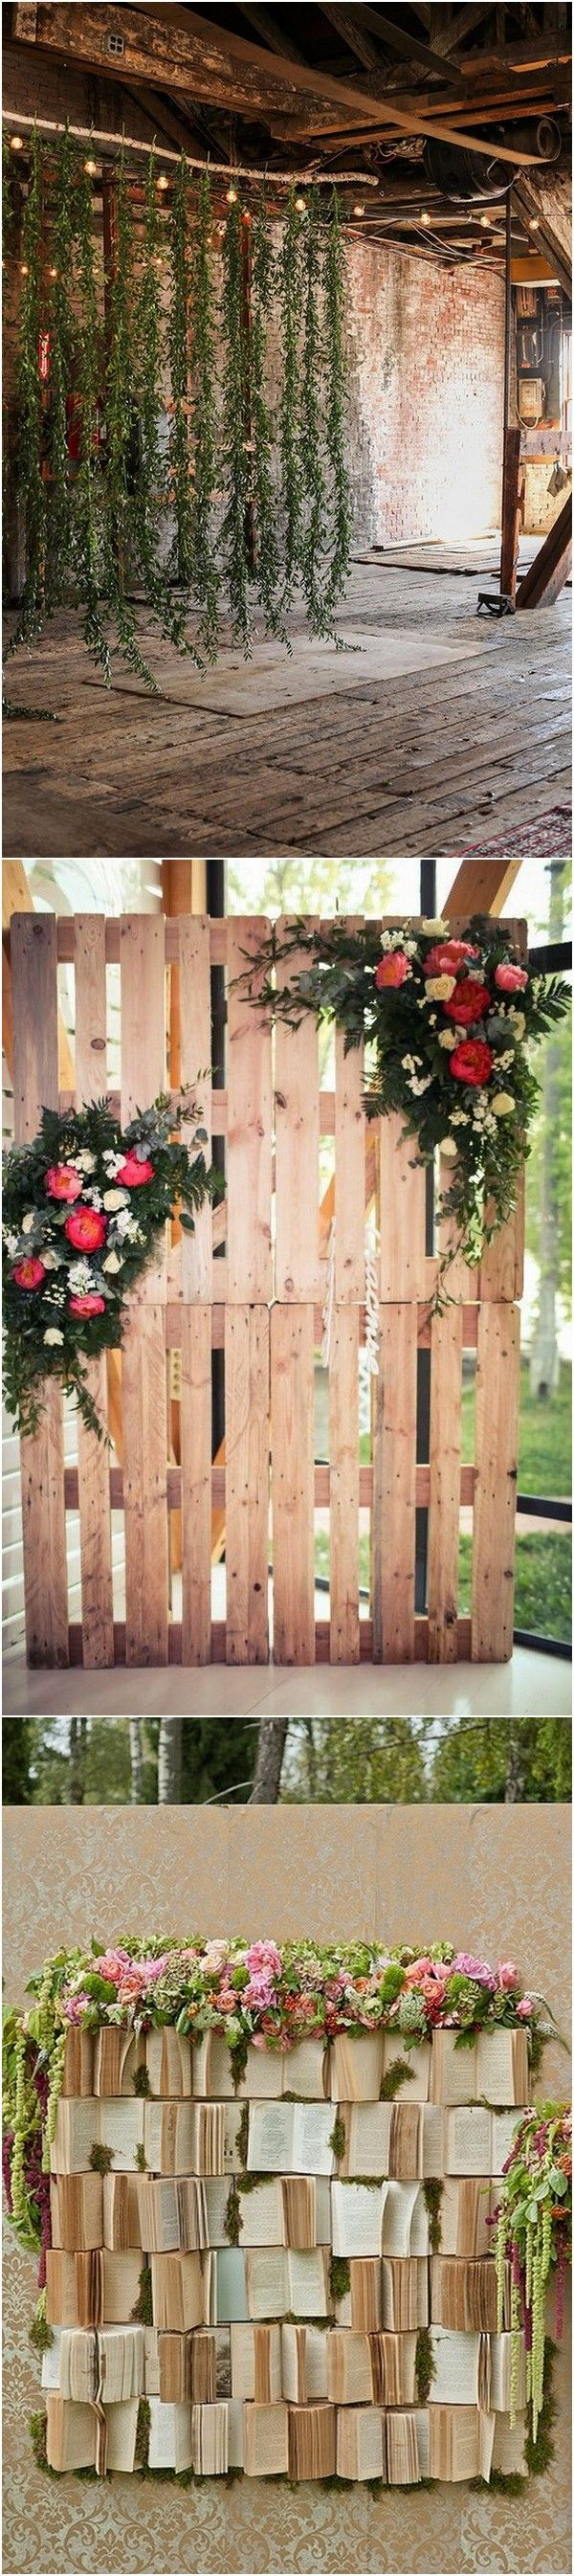 greenery garland chic rustic wedding backdrop ideas